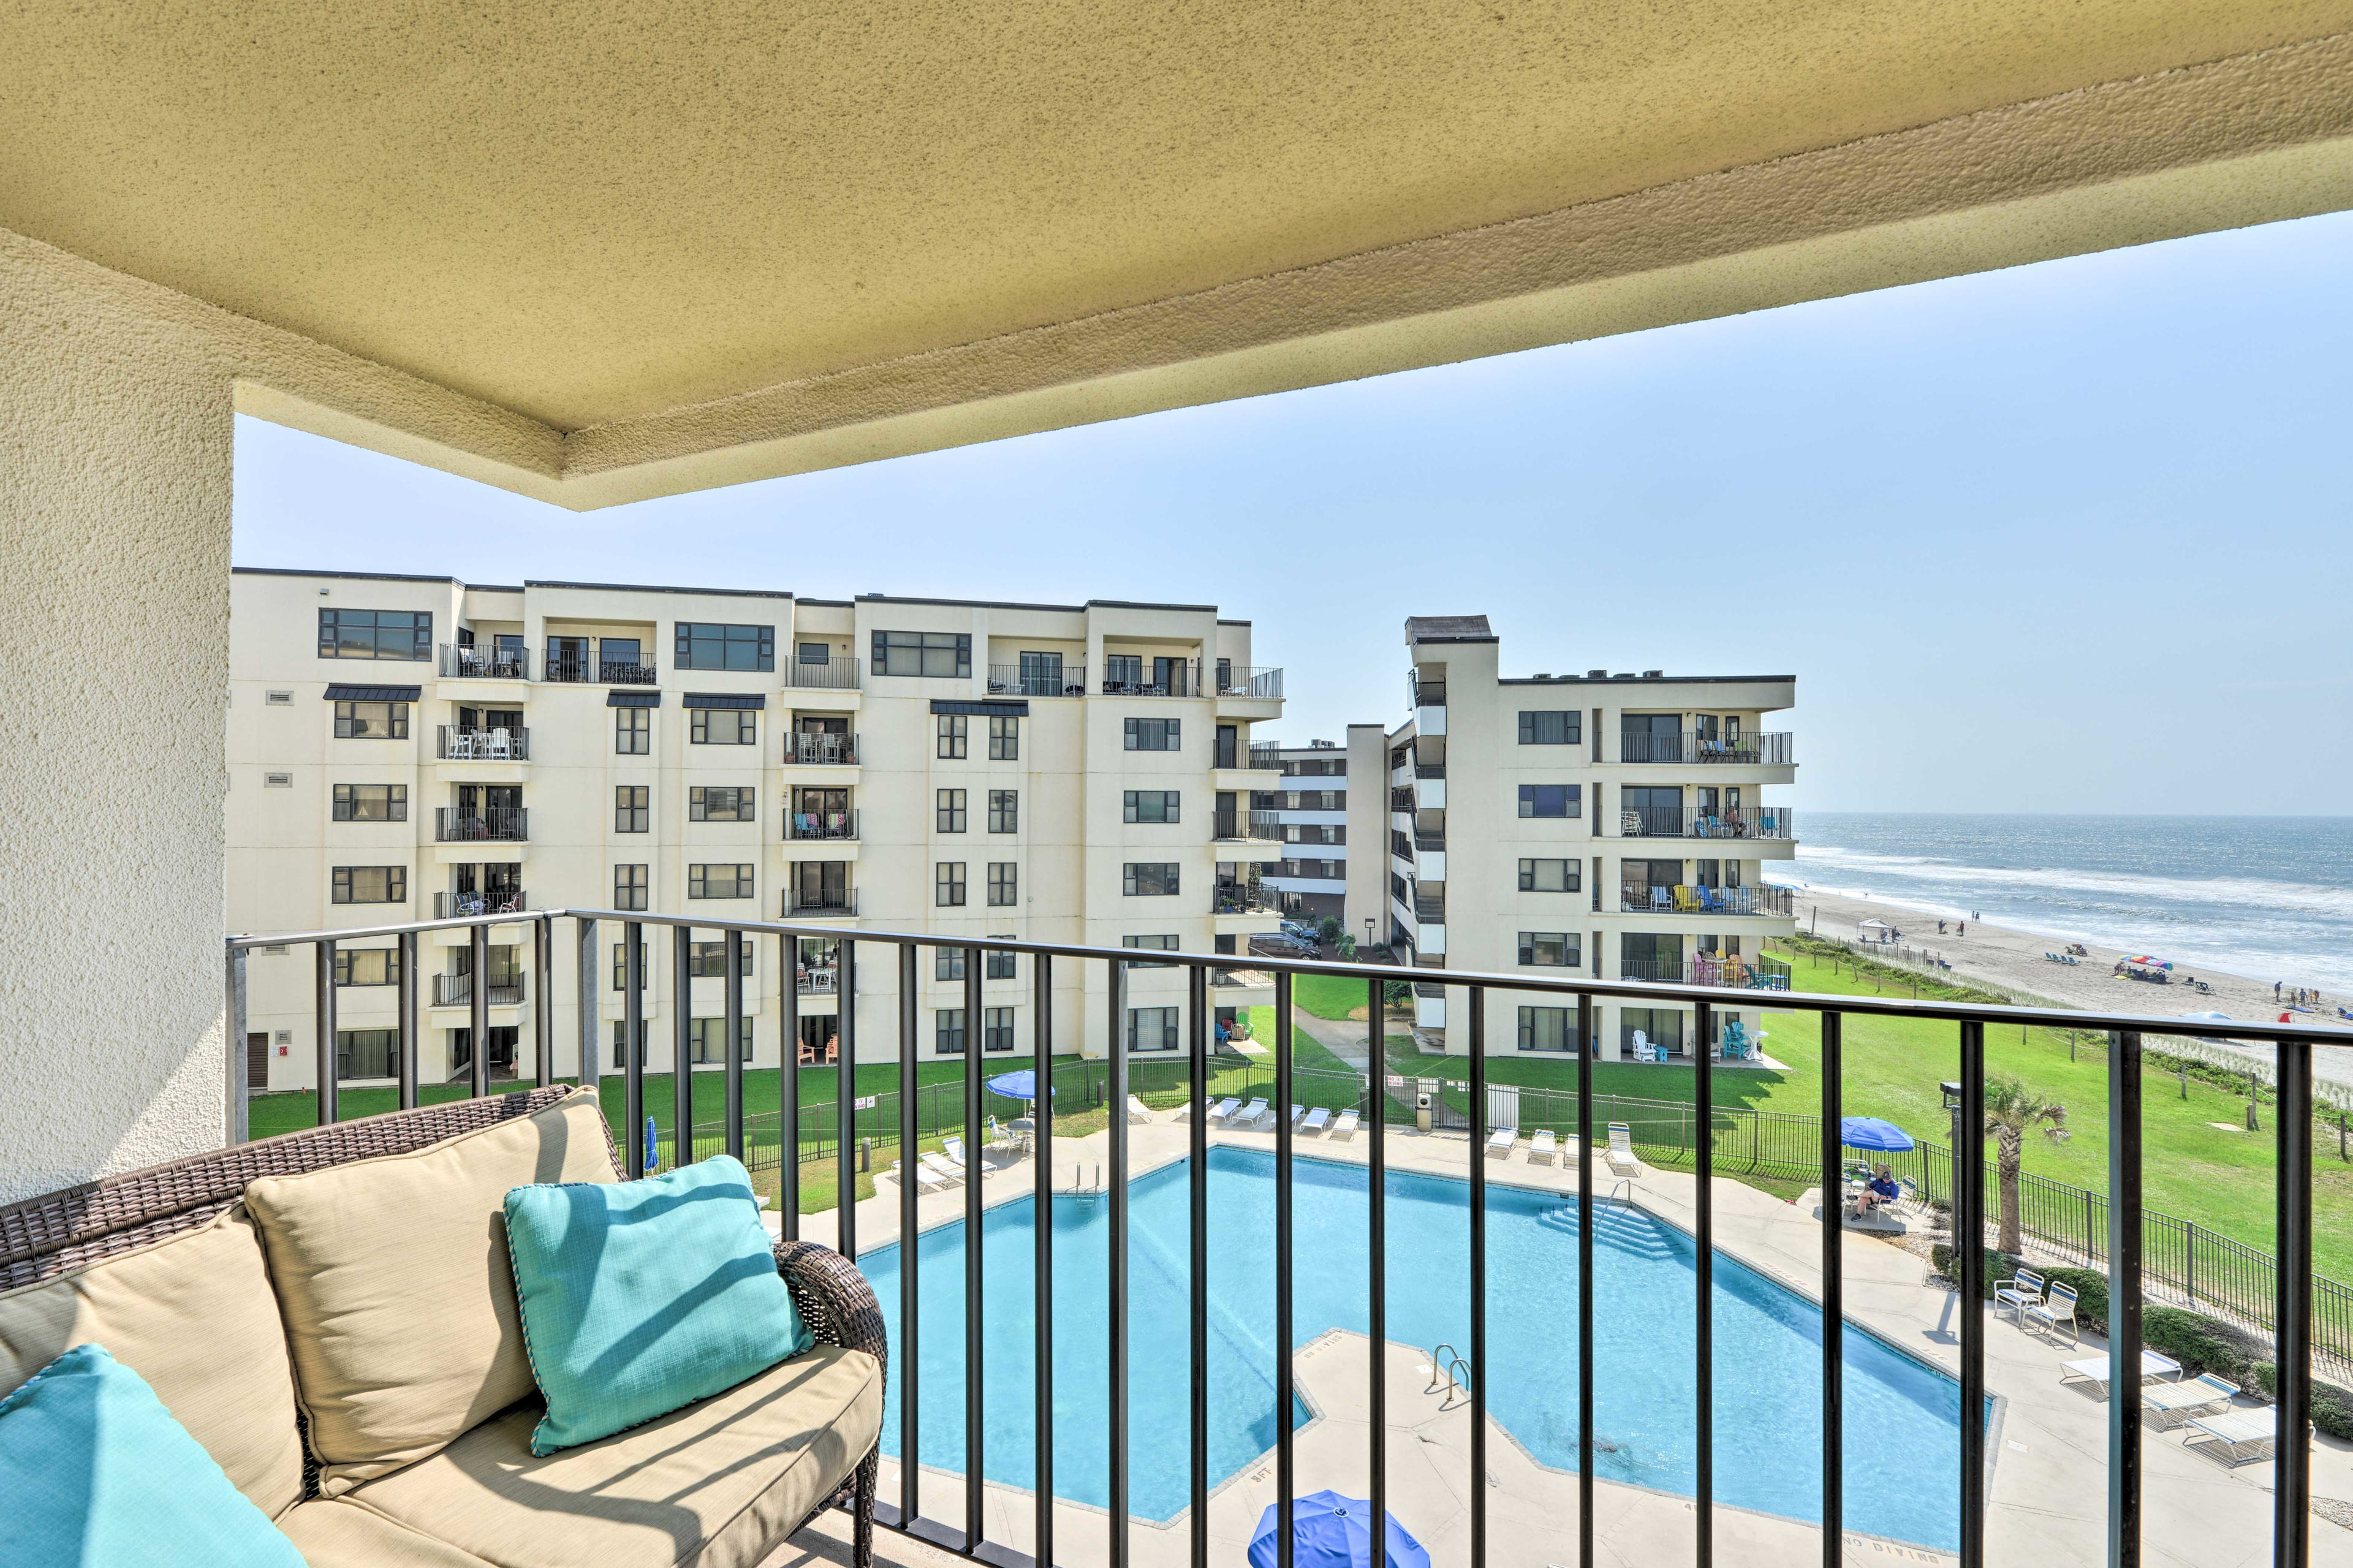 Step outside to enjoy the vibrant sunshine and stunning views of the beach!